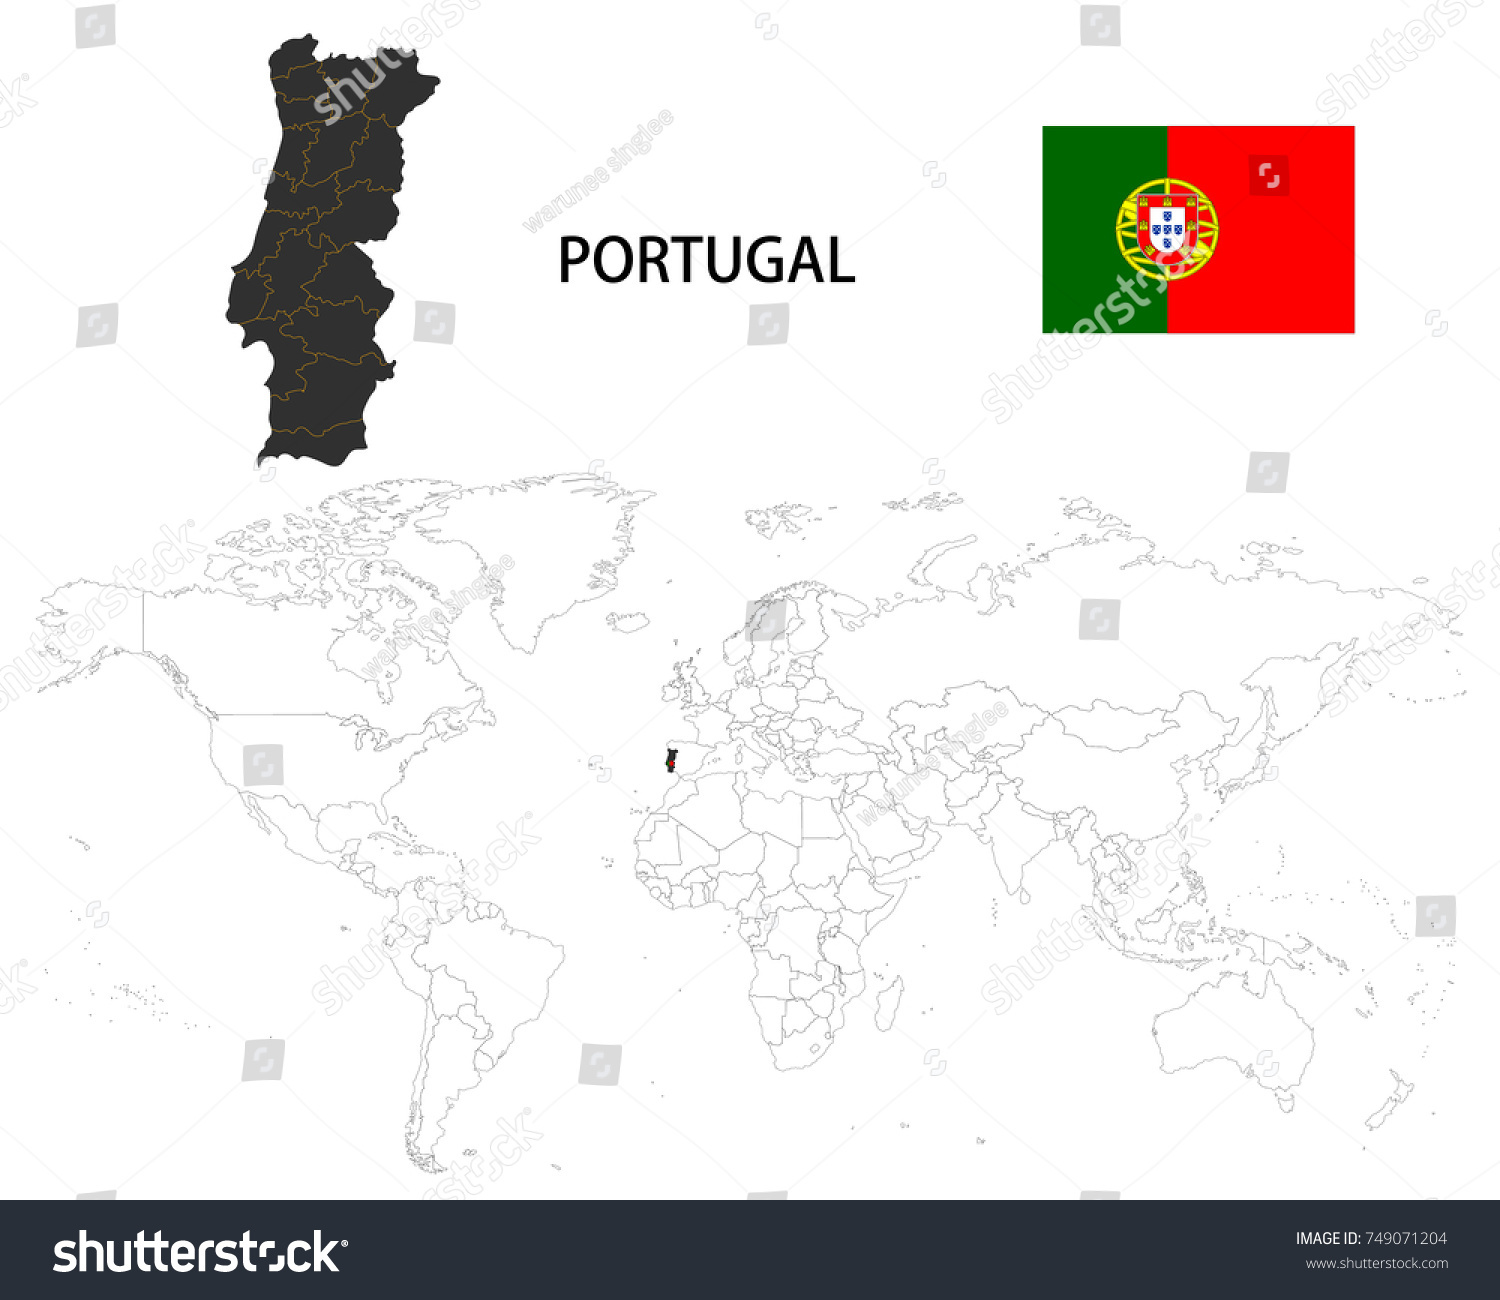 Portugal On The World Map.Portugal Map On World Map Flag Stock Vector Royalty Free 749071204